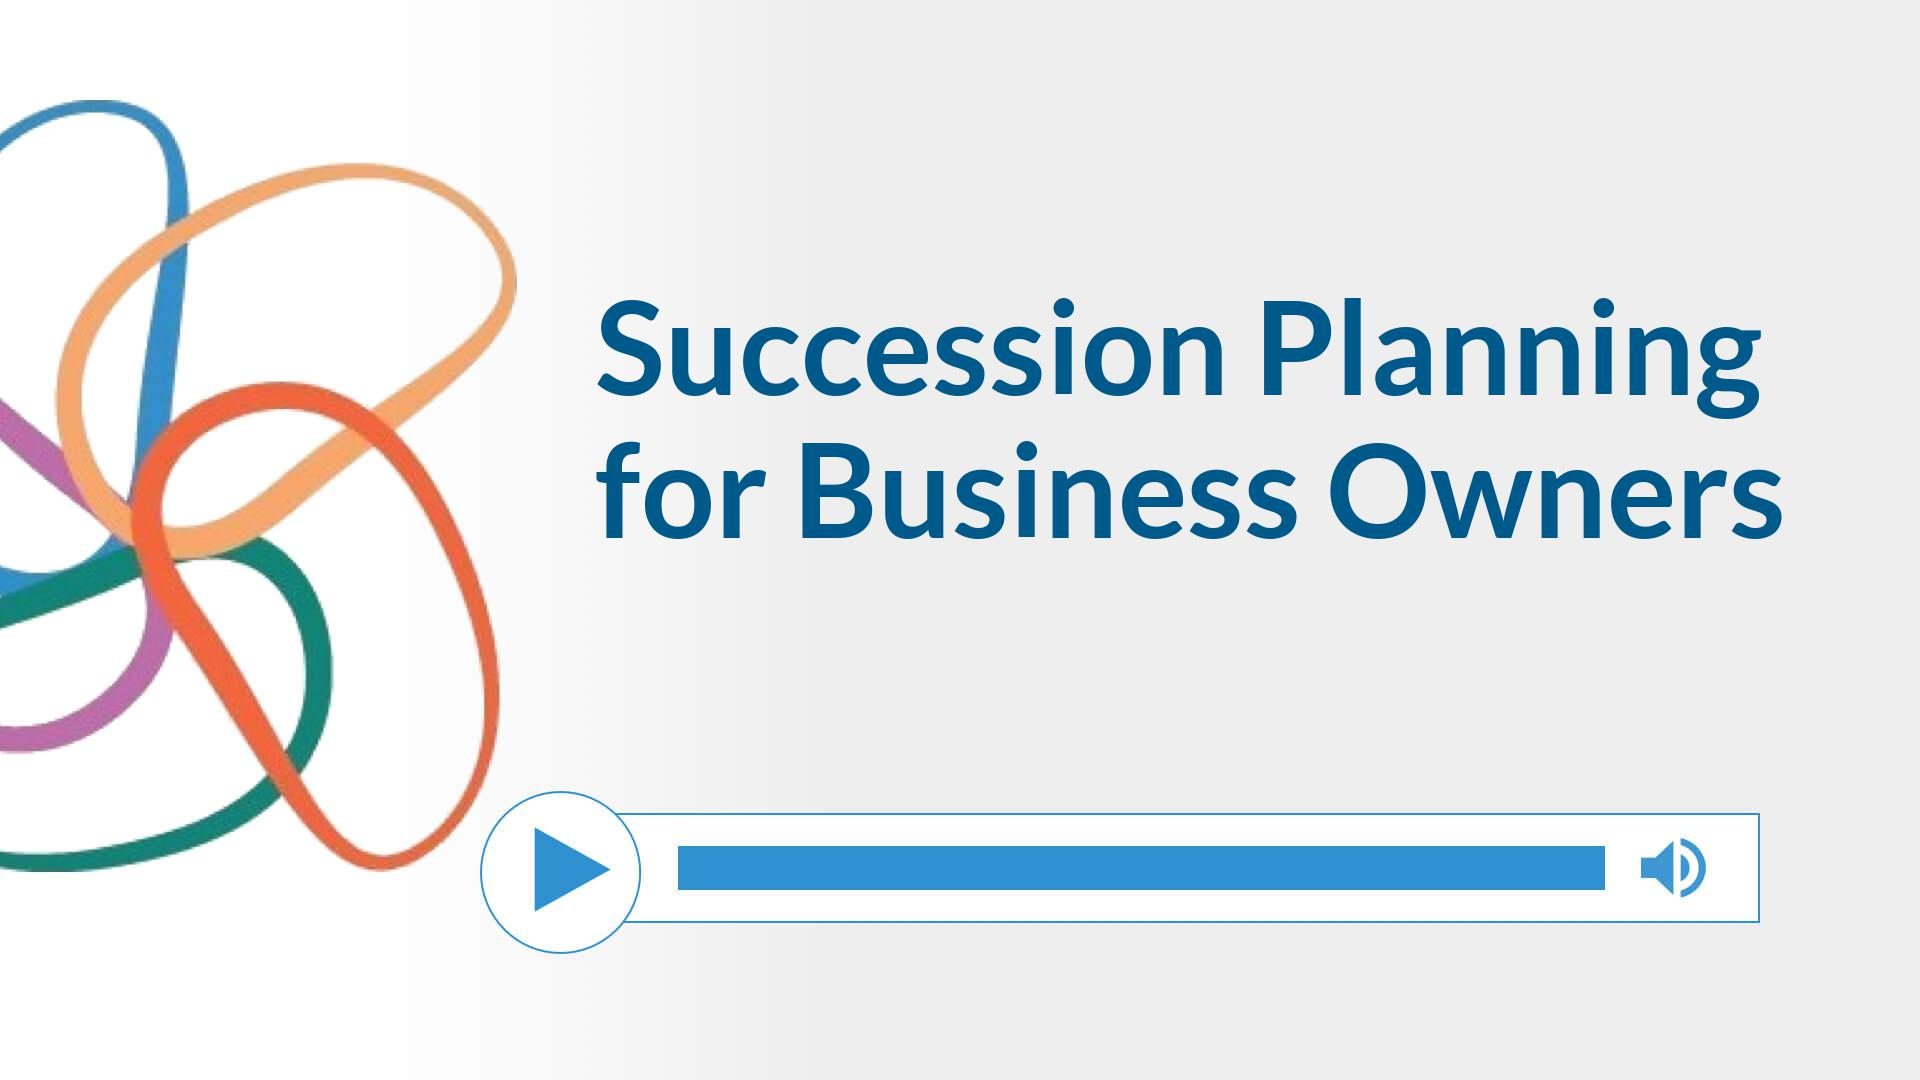 Succession Planning for Business Owners